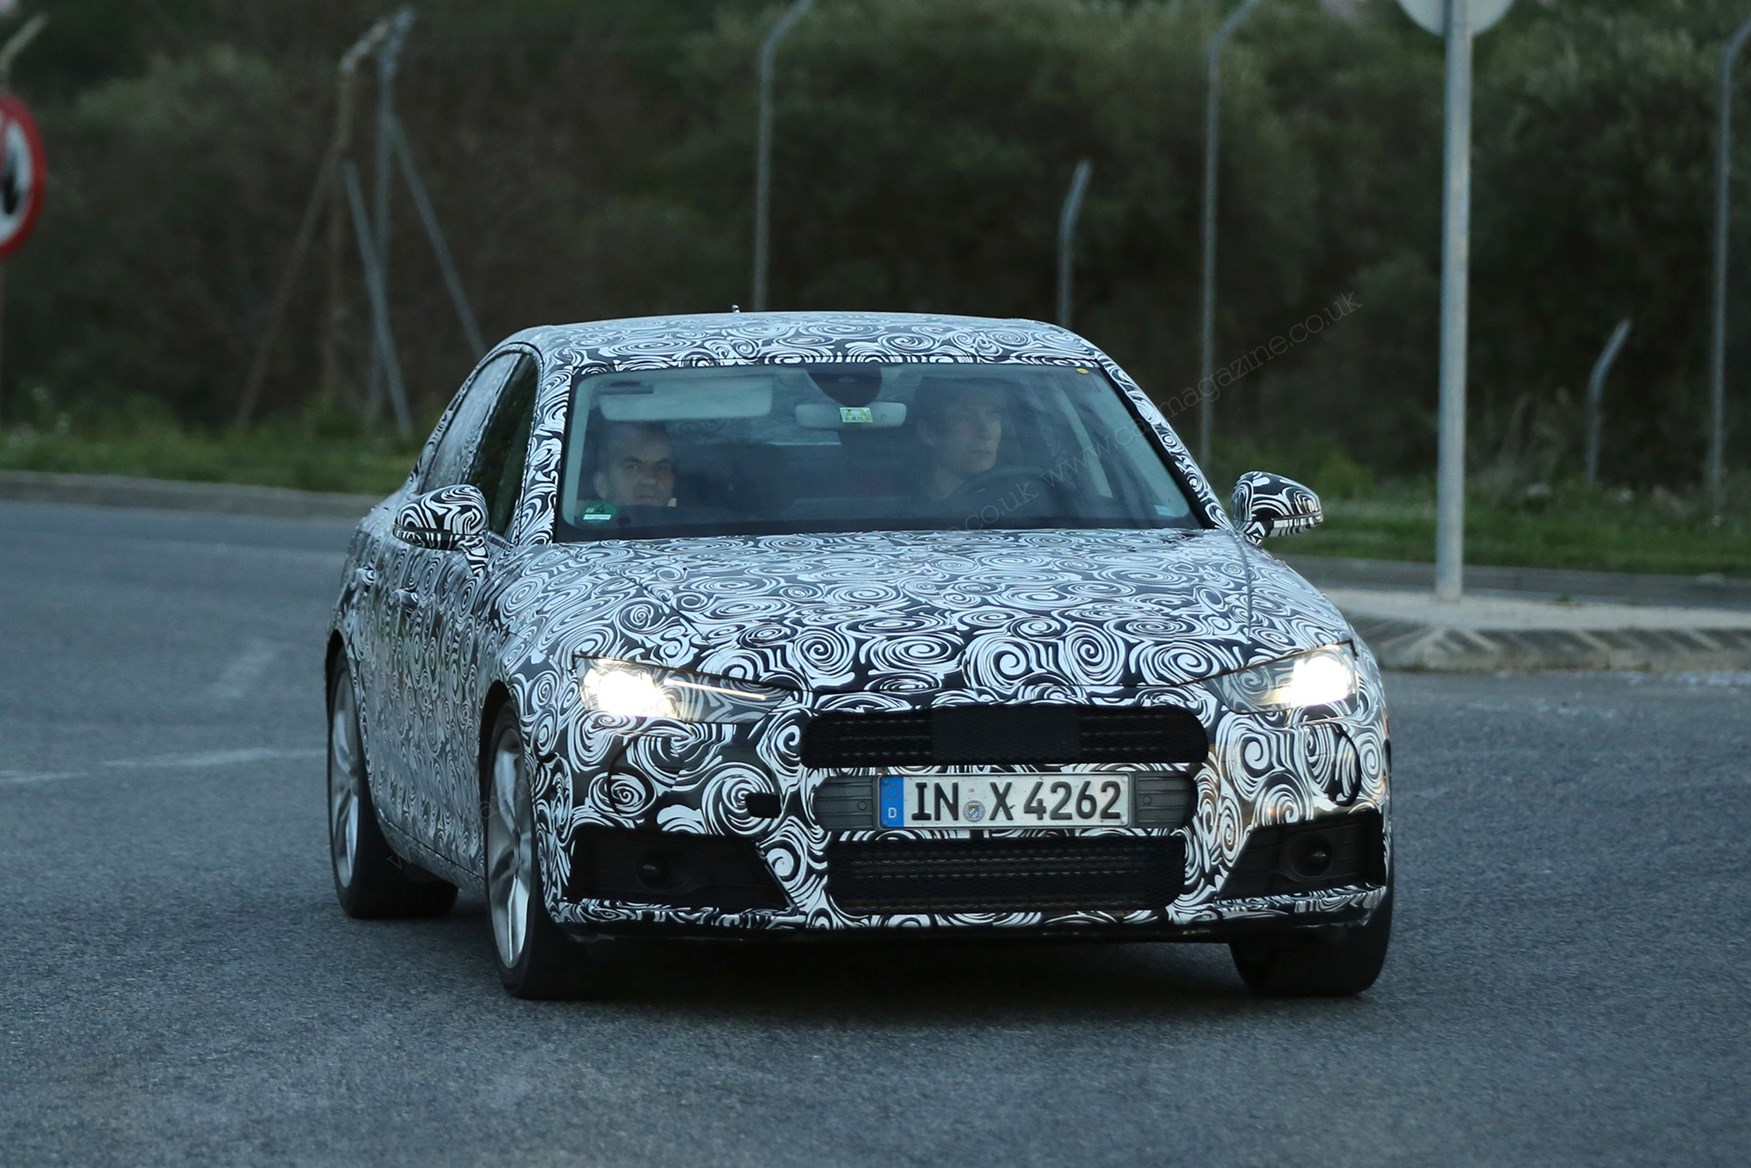 The Art Of Car Disguise Prototype Camouflage Decoded